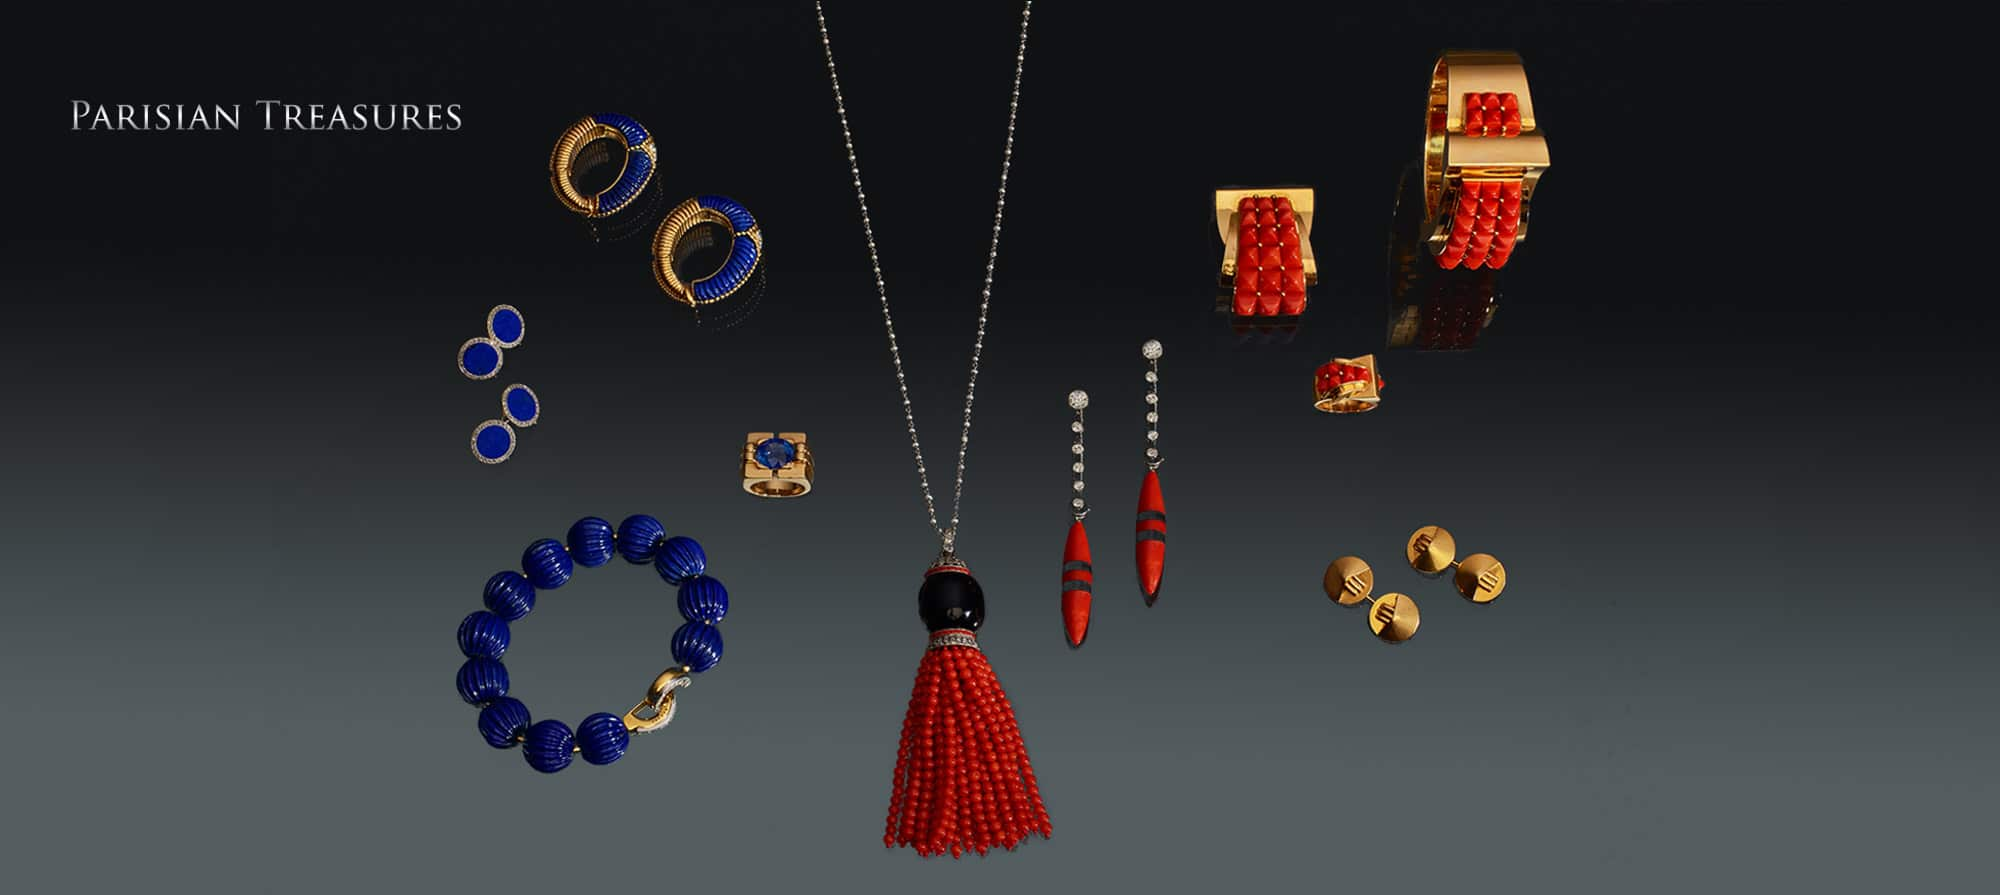 """Lapis & Diamond Bracelet by Cartier, Paris, French Lapis & Diamond Cufflinks, Lapis & Diamond Earrings in Gold by Van Cleef & Arpels, Sapphire Ring in Gold by Van Cleef & Arpels, Art Deco Coral, Natural Pearl, and Onyx Sautoir, Art Deco Diamond, Coral, and Onyx Earrings, Coral Brooch in Gold by Chaumet, Paris, Coral Bracelet in Gold by Chaumet, Paris, Coral Ring in Gold by Chaumet, Paris, """"Chapeau Chinois"""" Cufflinks in Gold by Rene Boivin, Paris"""